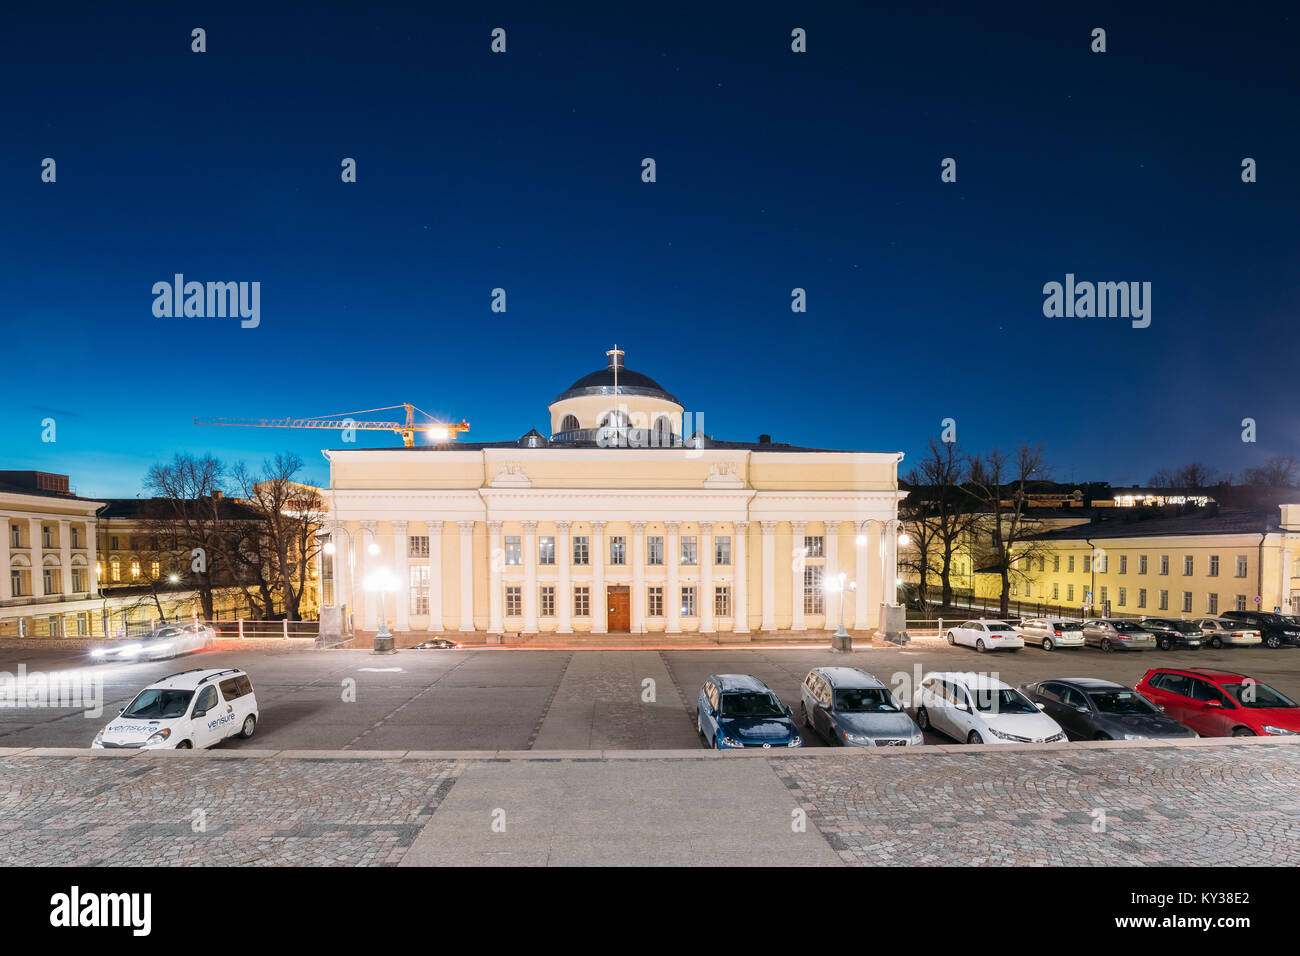 Helsinki, Finland - December 9, 2016: The National Library Of Finland In Lighting At Evening Or Night Illumination. - Stock Image